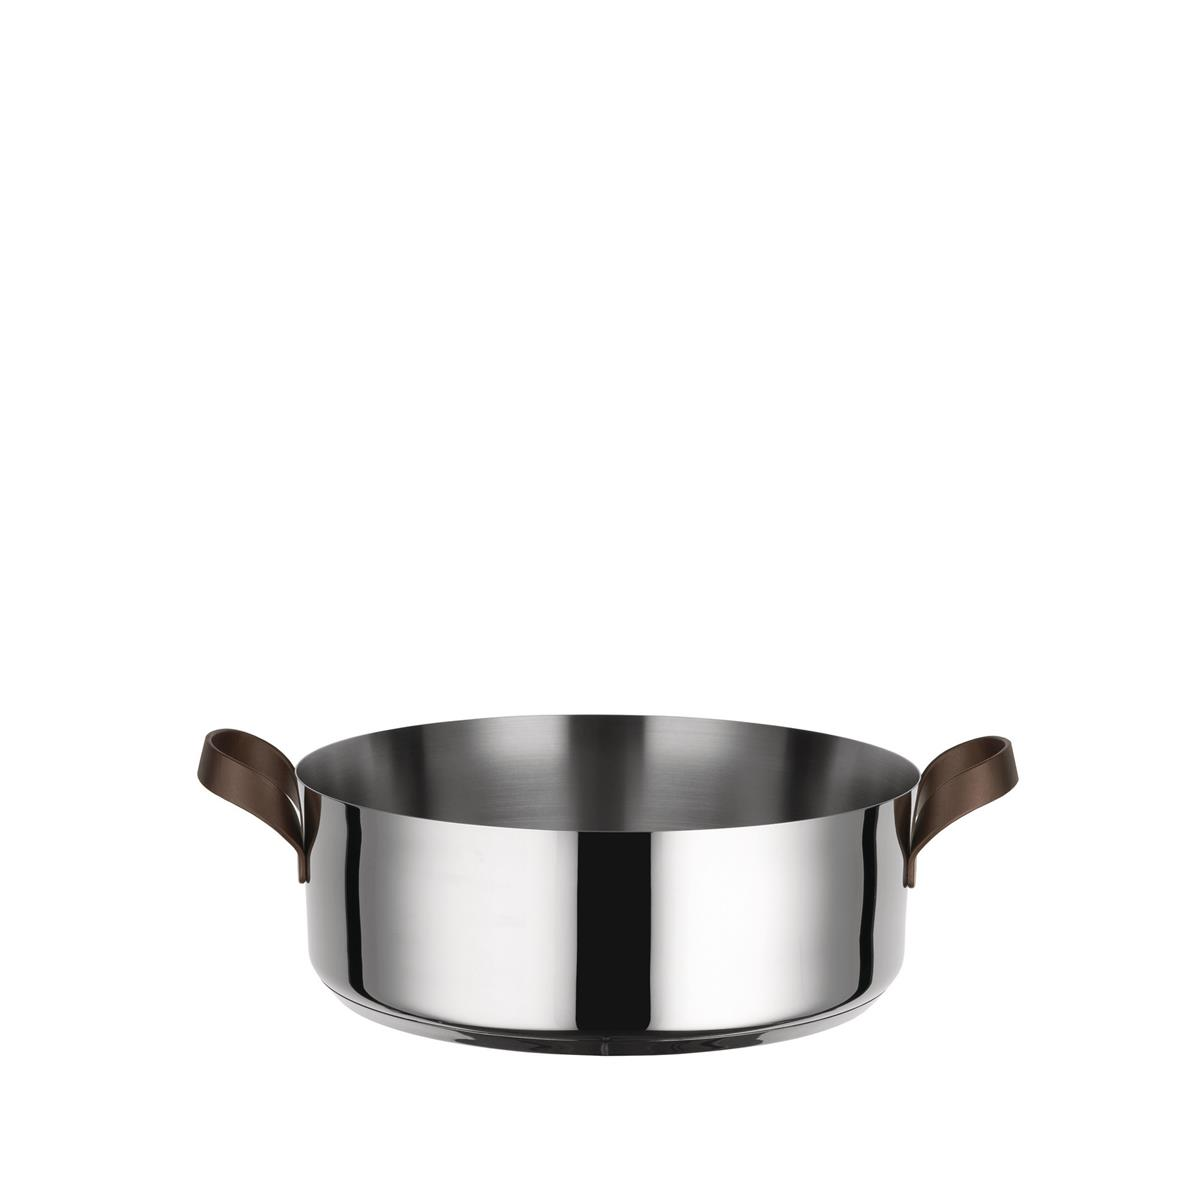 Alessi-edo Low casserole in 18/10 stainless steel suitable for induction